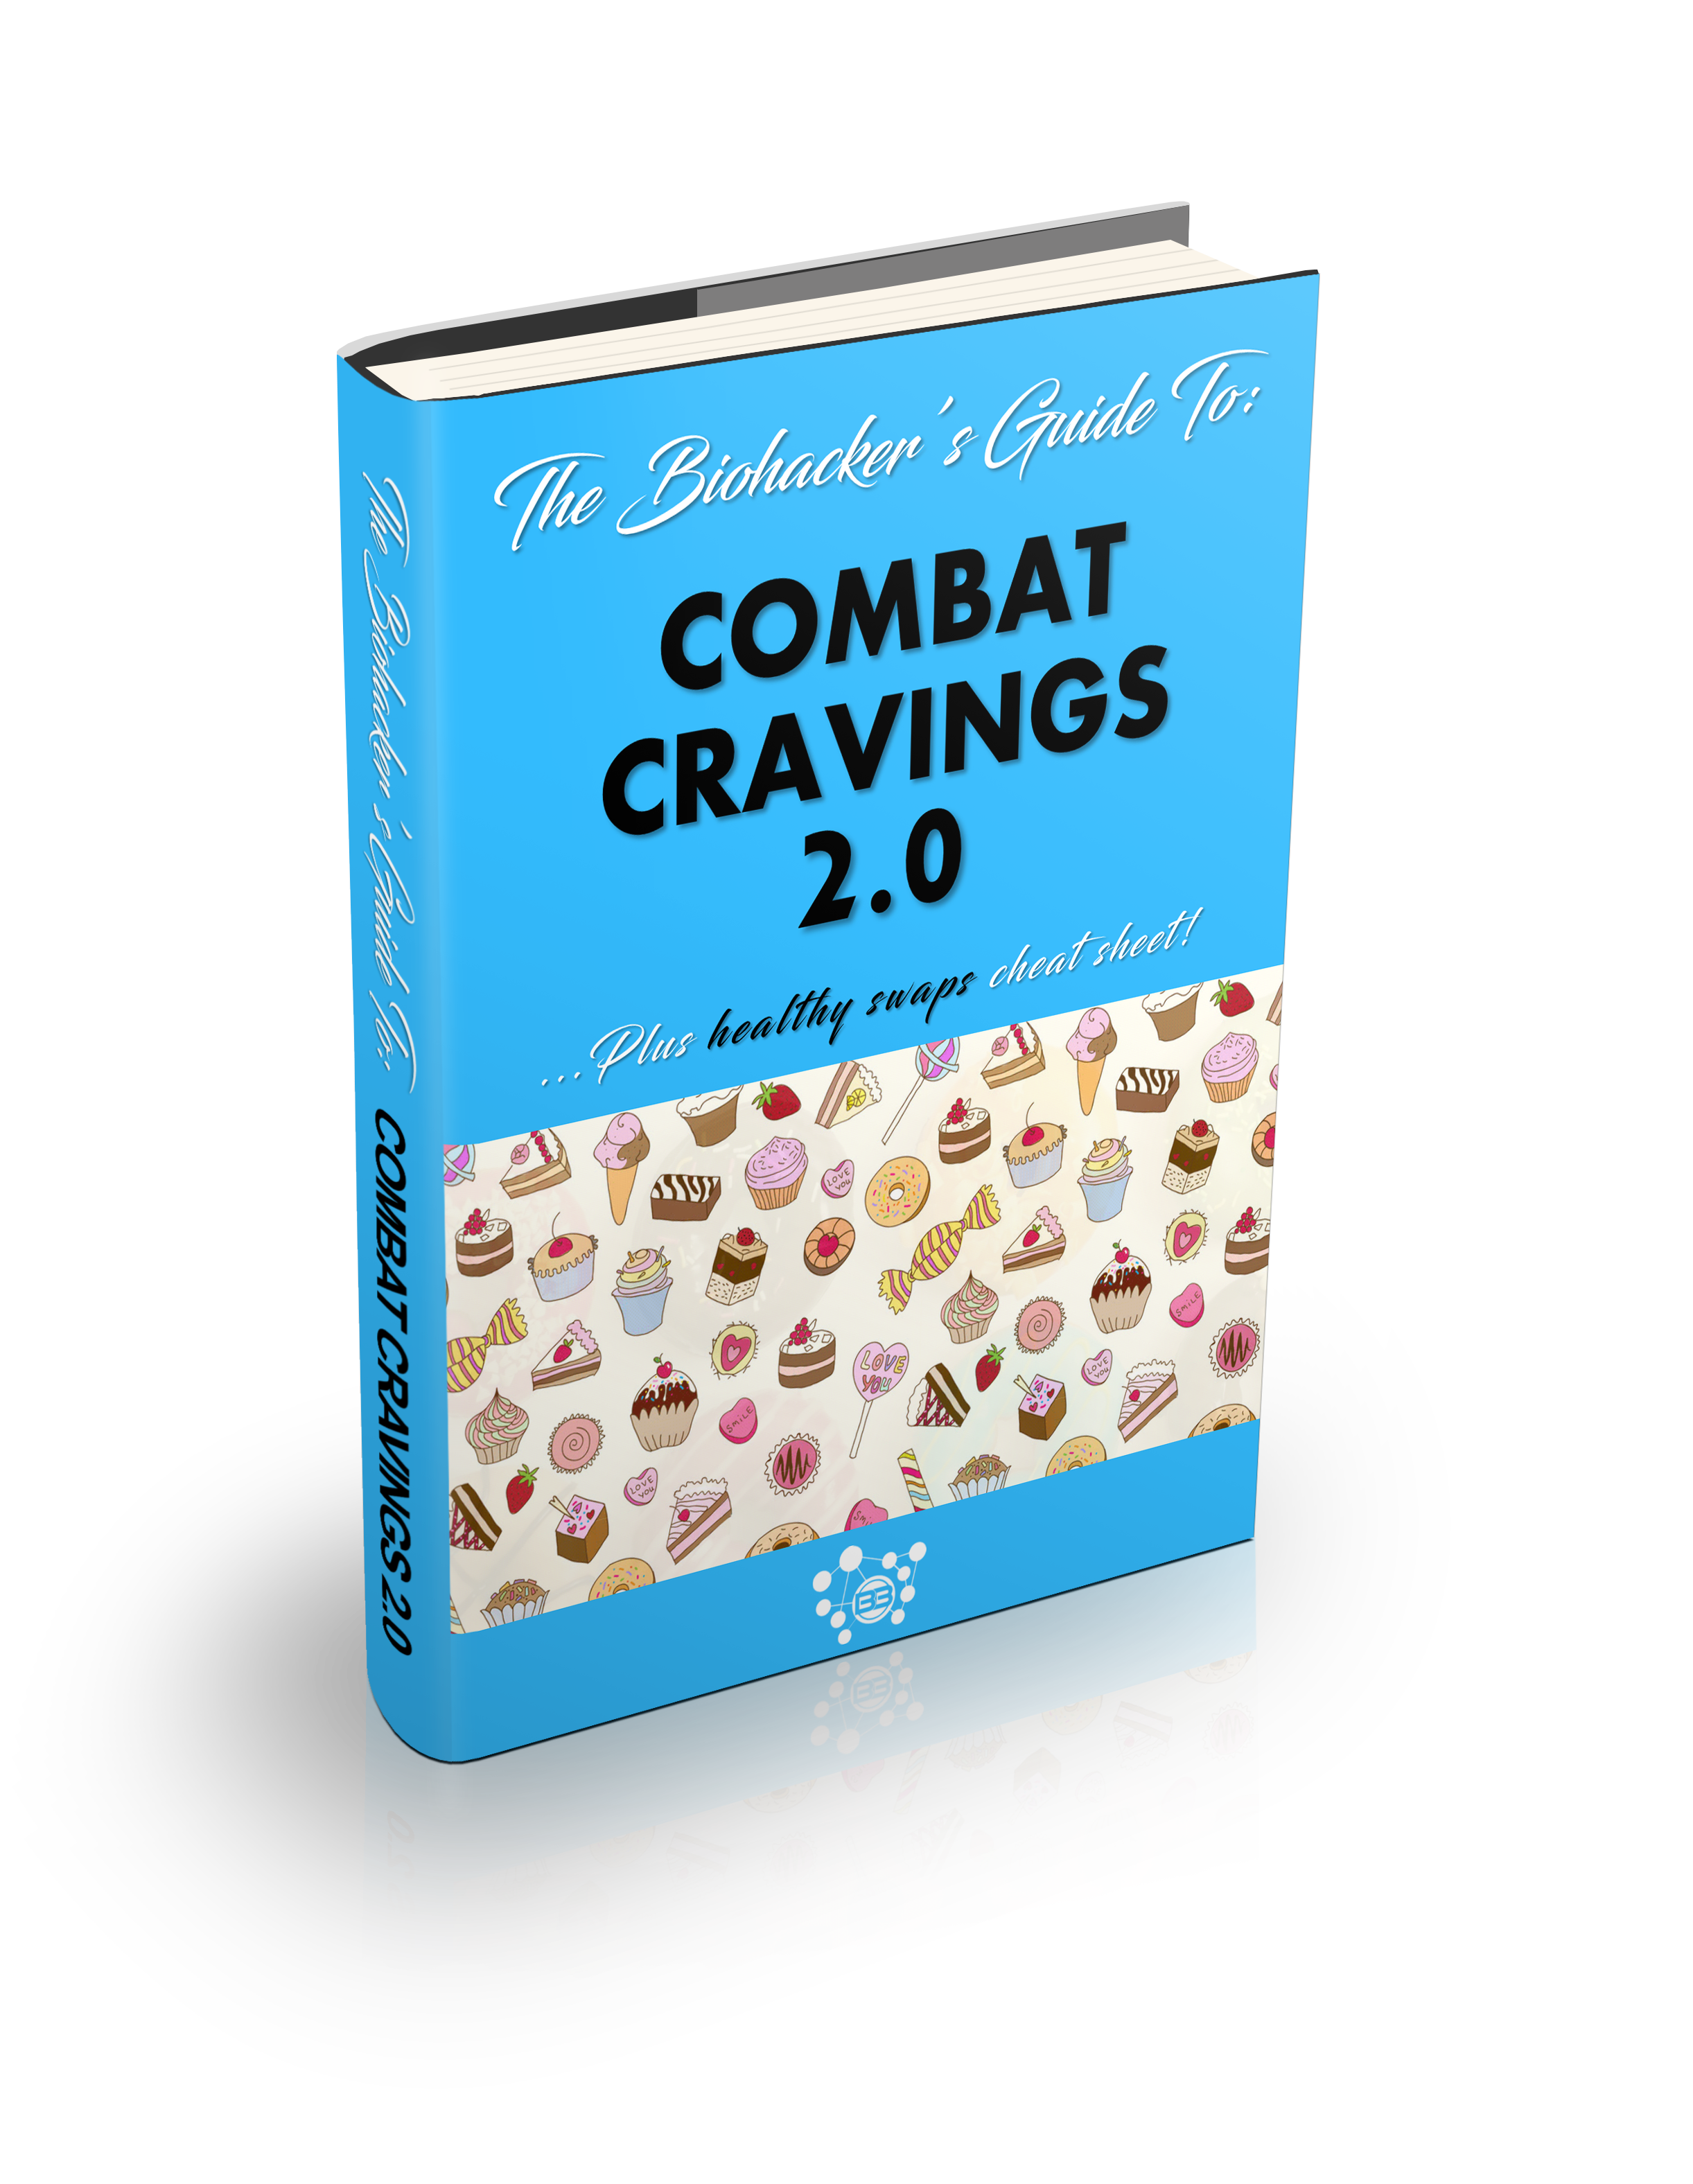 Combat Cravings Guide